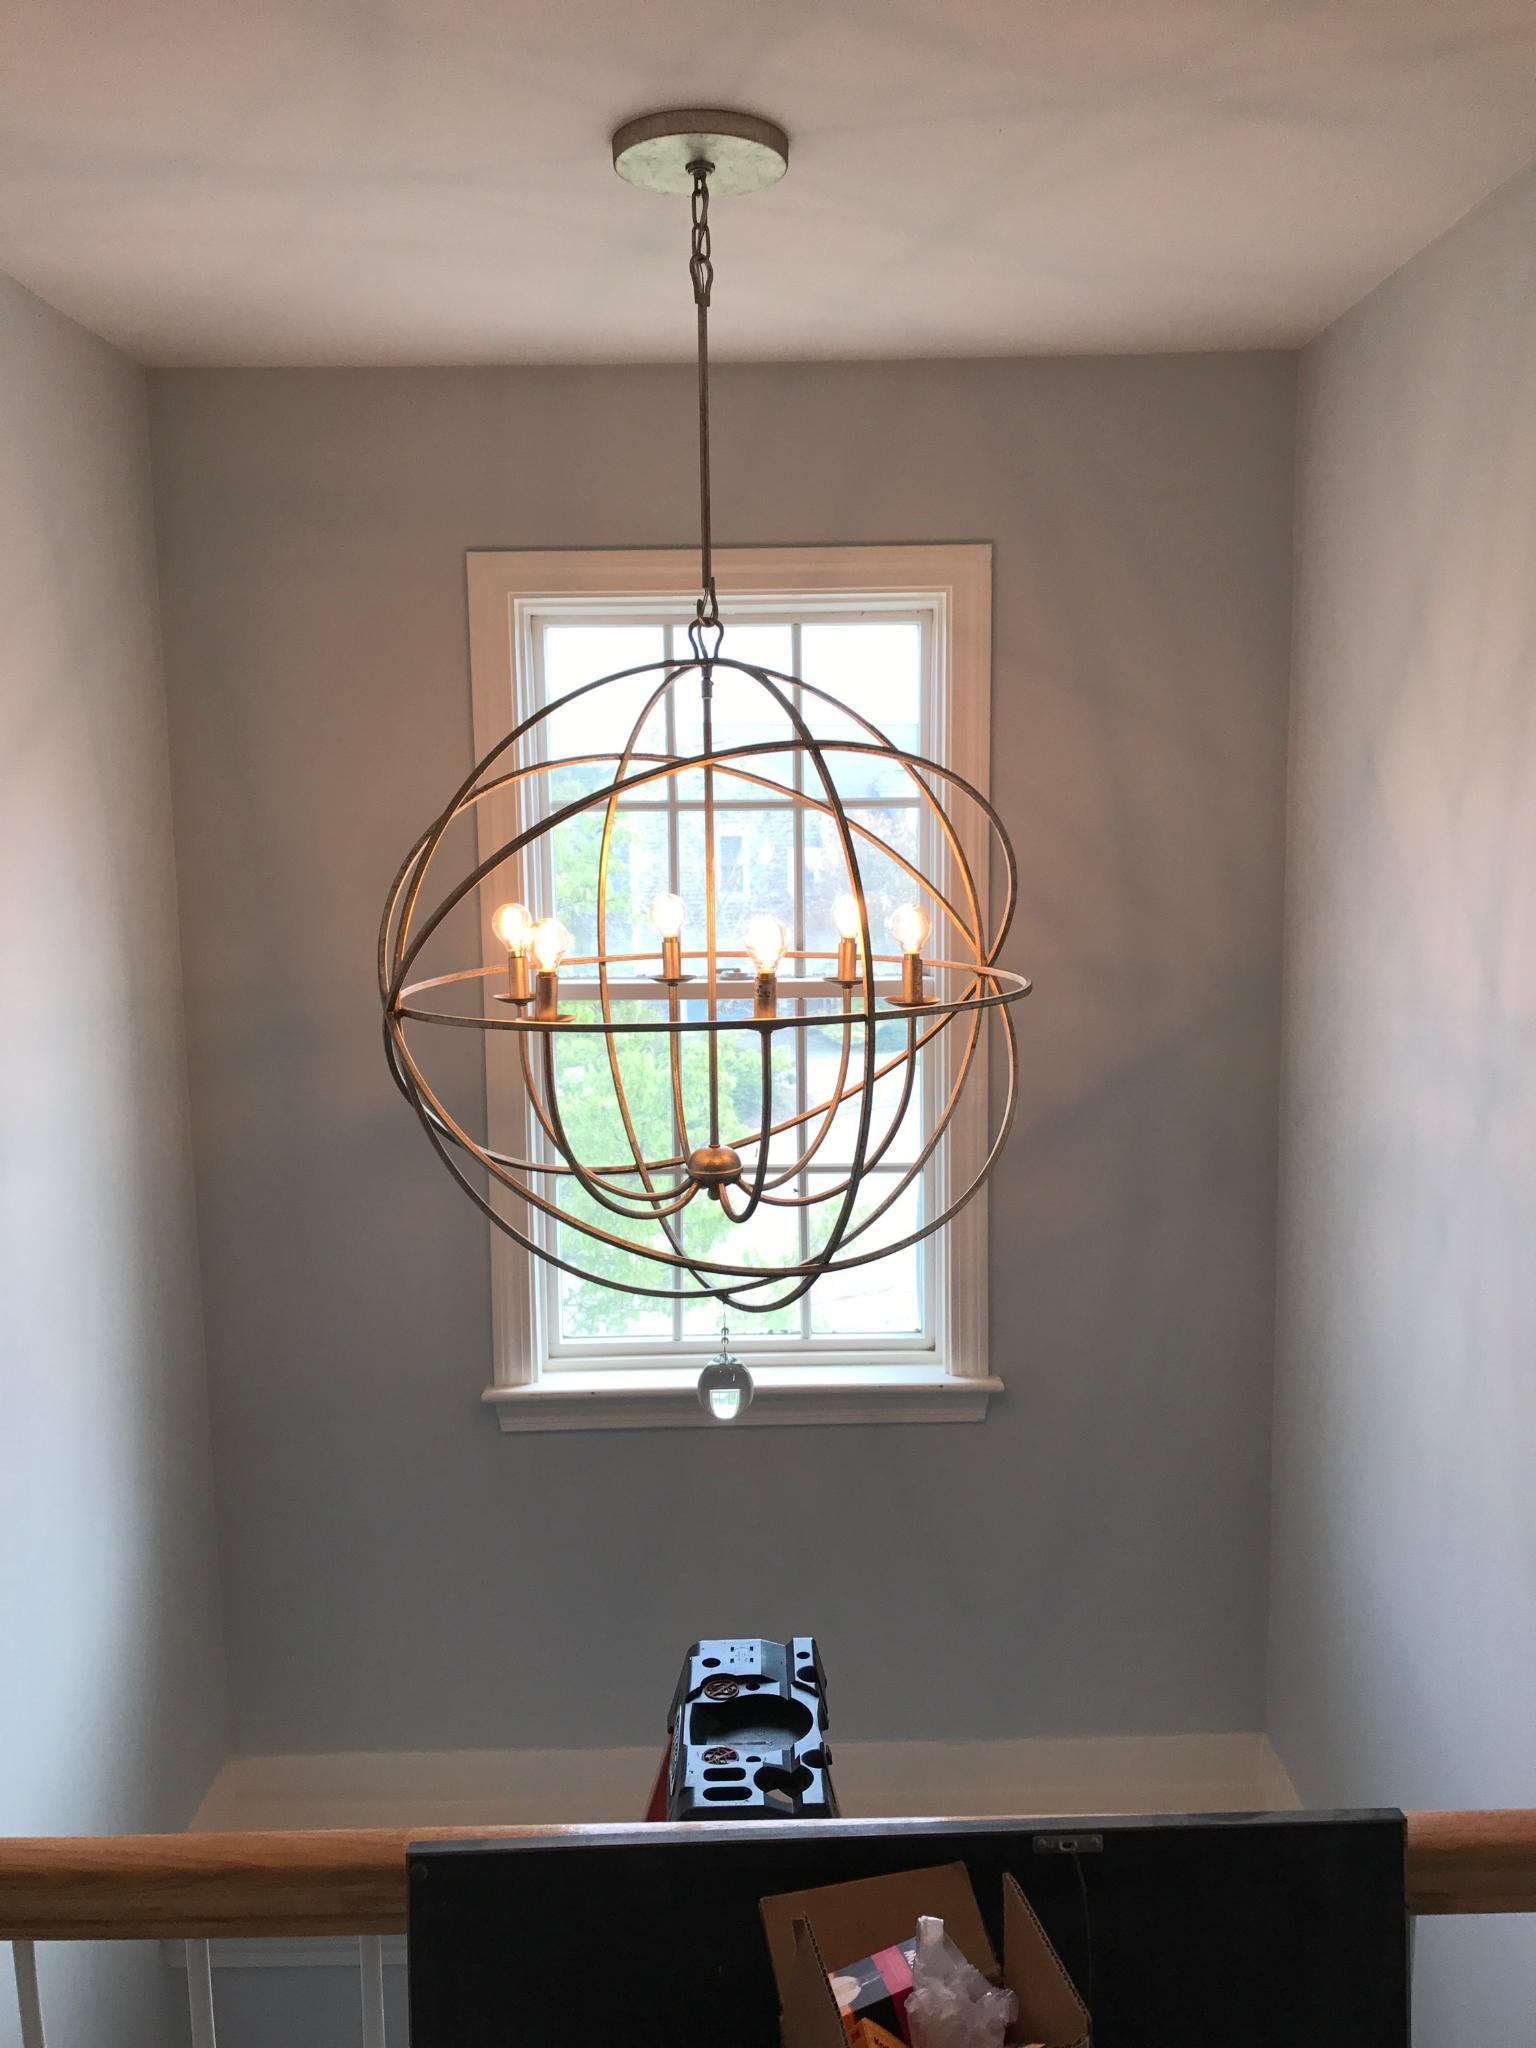 Chandelier installation wellington r soares electrician inc chandelier installation arubaitofo Images